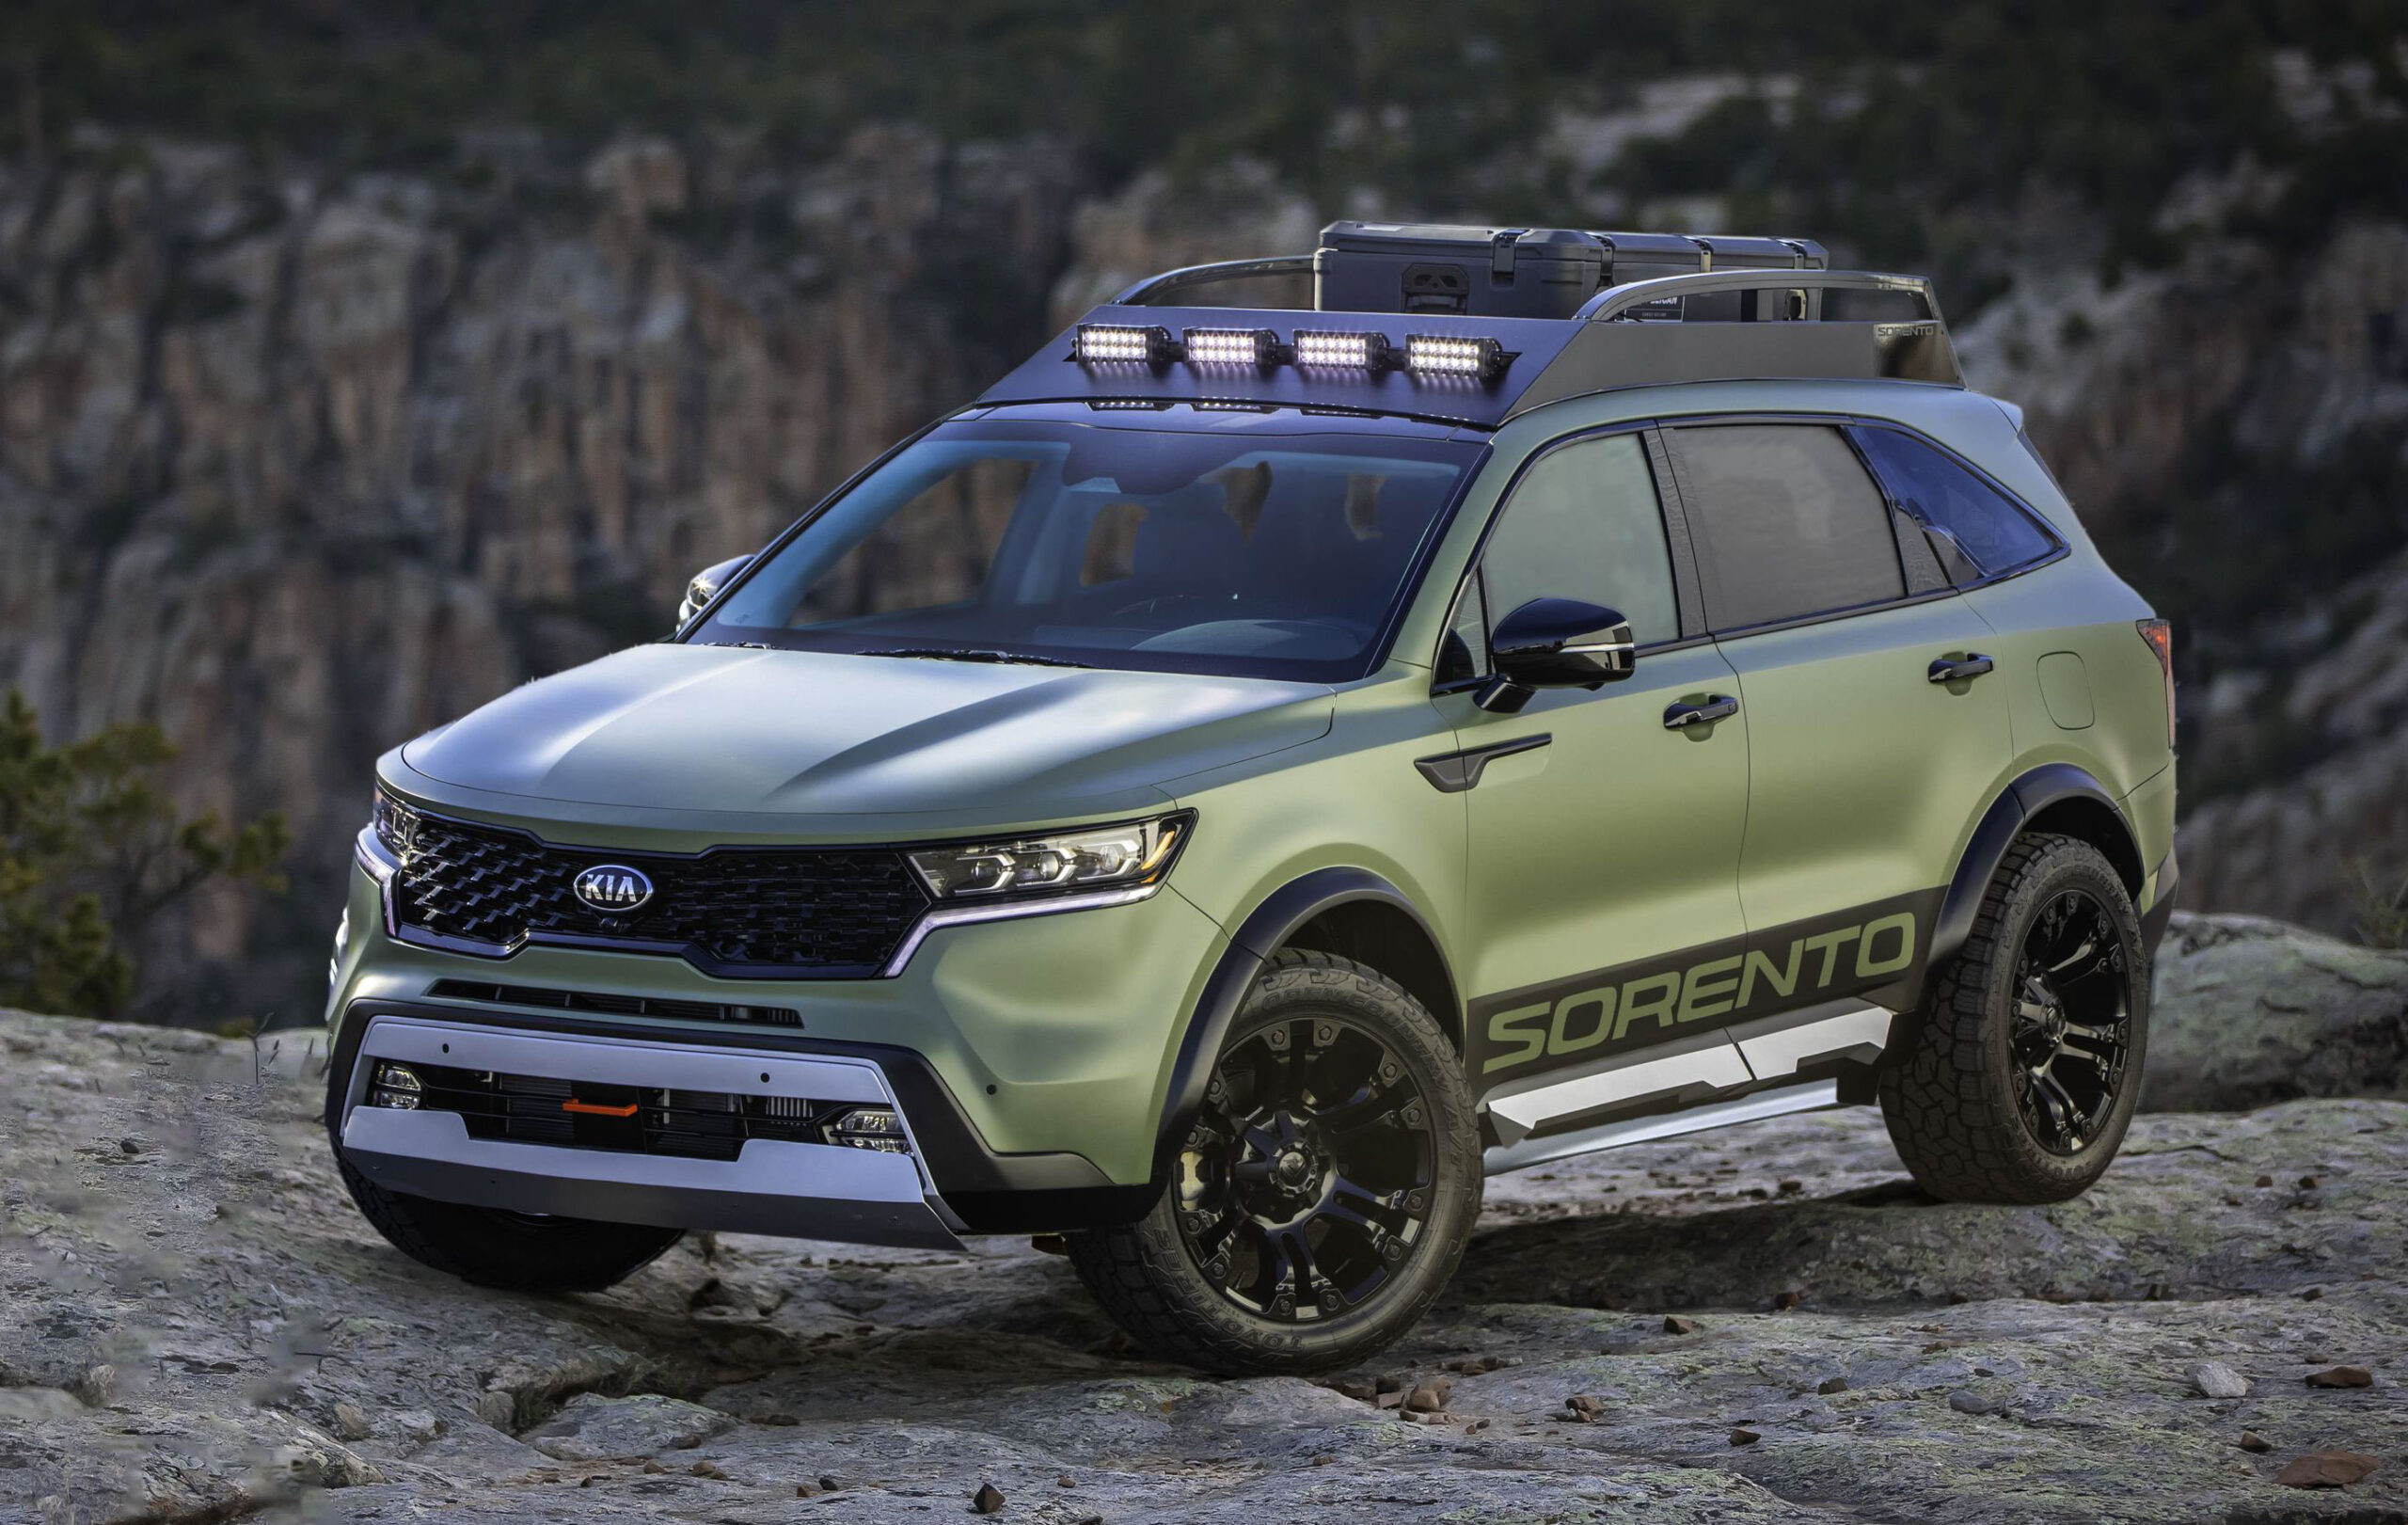 Aggressive Custom SUVs Signal Brand's Focus on Adventure, Capability and Trail Readiness. Sorento Yosemite Edition aims at exploring high-elevation locales and mountain living. Sorento Zion Edition is a dune-defeating desert escape vehicle.